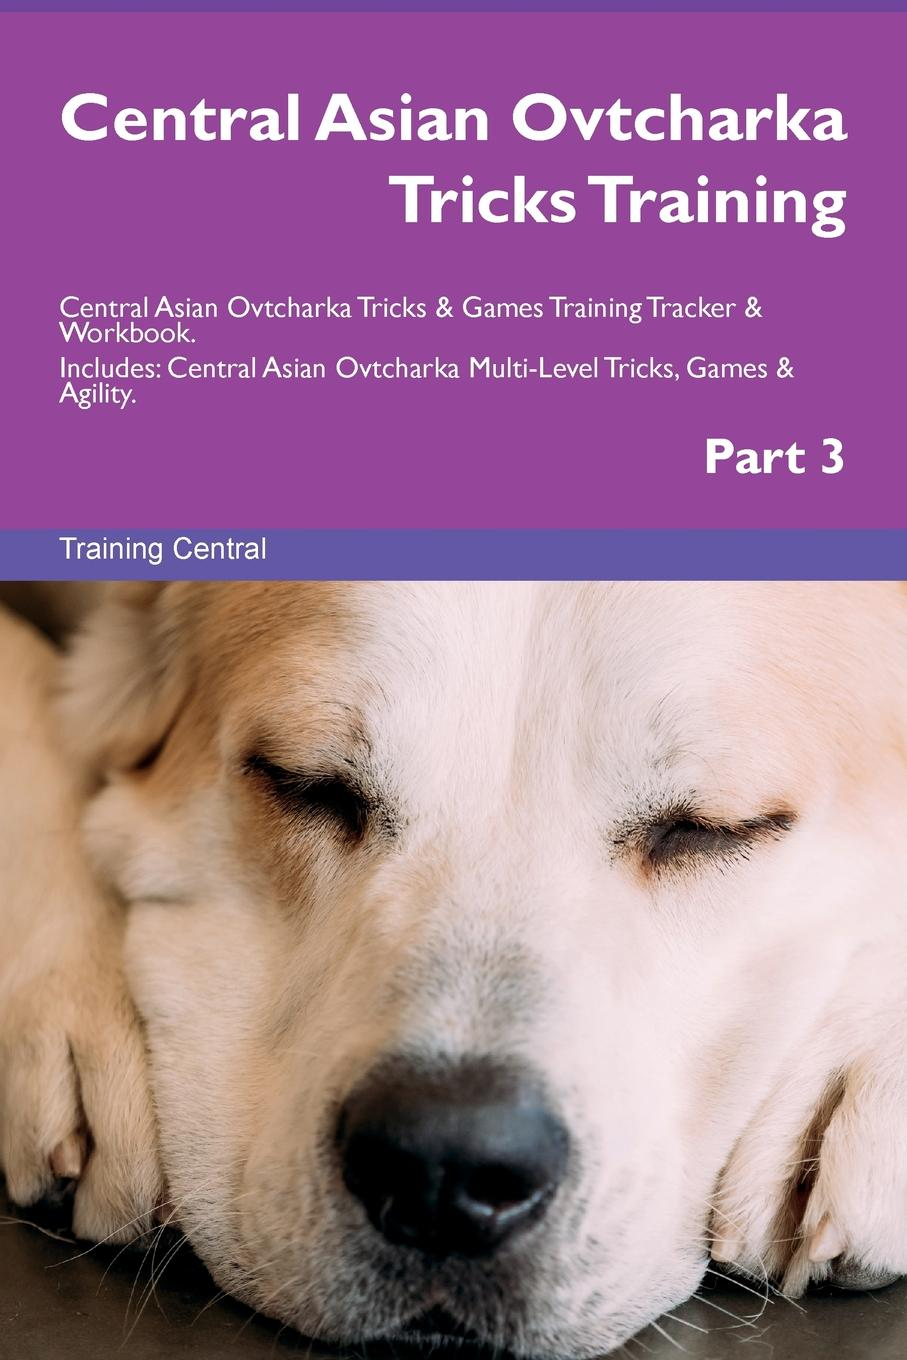 Training Central Central Asian Ovtcharka Tricks Training Central Asian Ovtcharka Tricks . Games Training Tracker . Workbook. Includes. Central Asian Ovtcharka Multi-Level Tricks, Games . Agility. Part 3 phlebotomine sand flies of central sudan